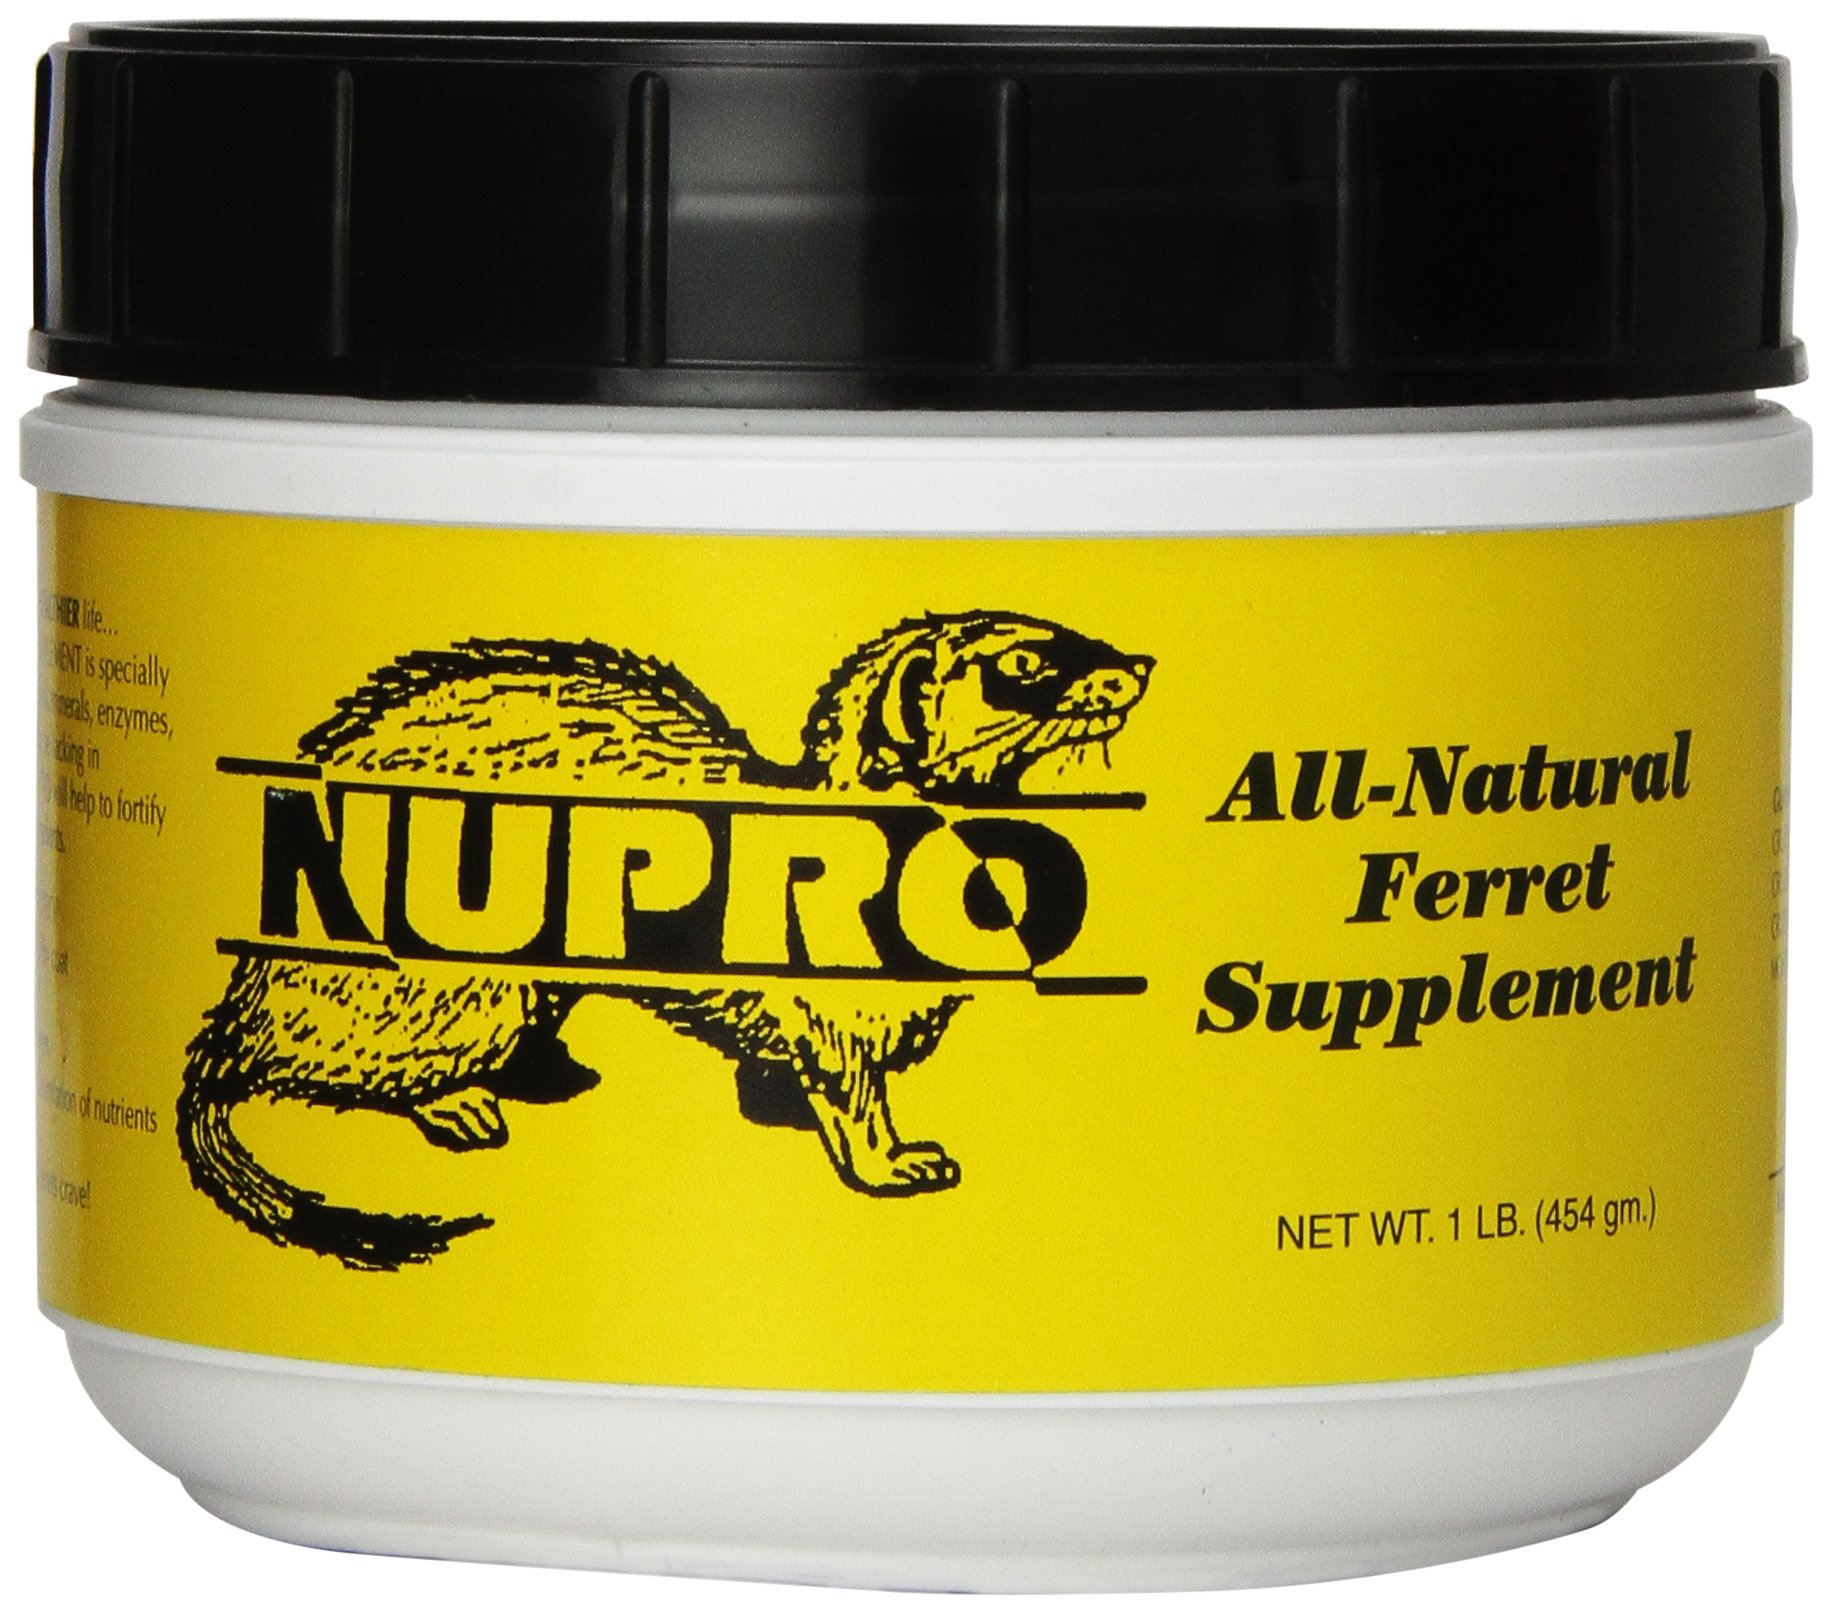 NUPRO SUPPLEMENTS 330055 Ferret Supplement for Pets, 1-Pound